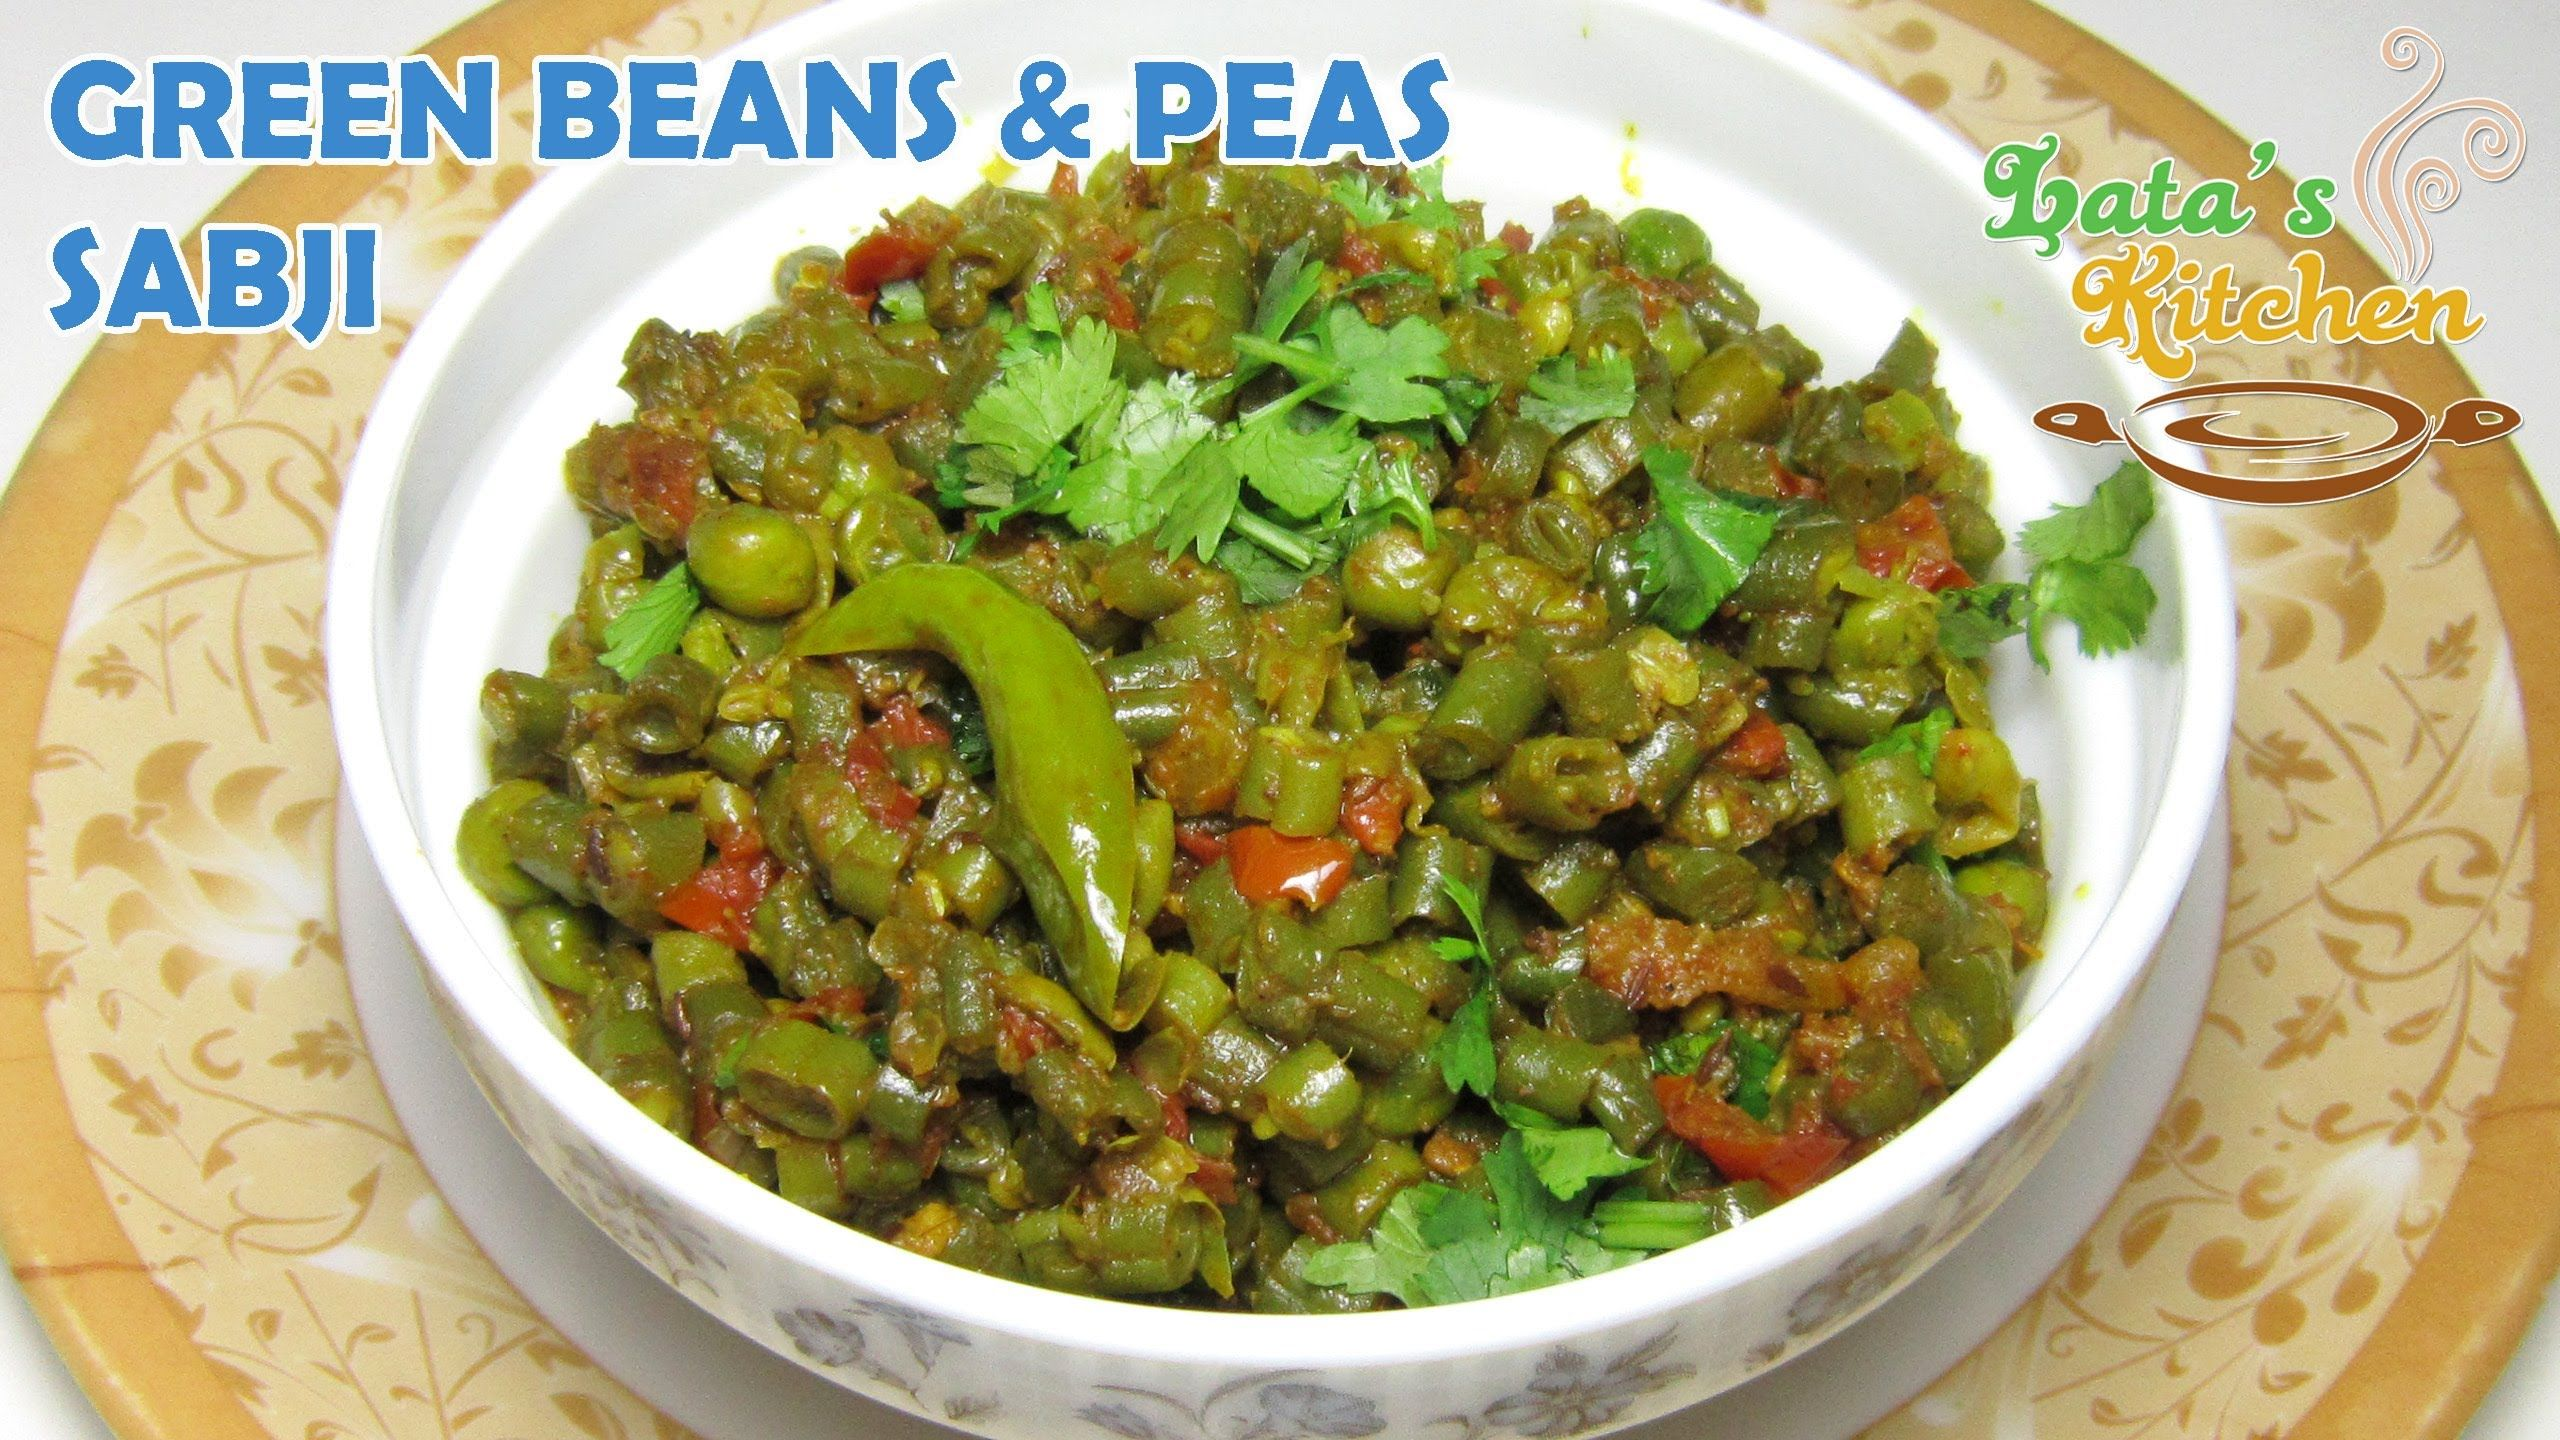 Green beans peas subzi recipe indian vegetarian recipe video in green beans peas subzi recipe indian vegetarian recipe video in hindi with english subtitles forumfinder Choice Image